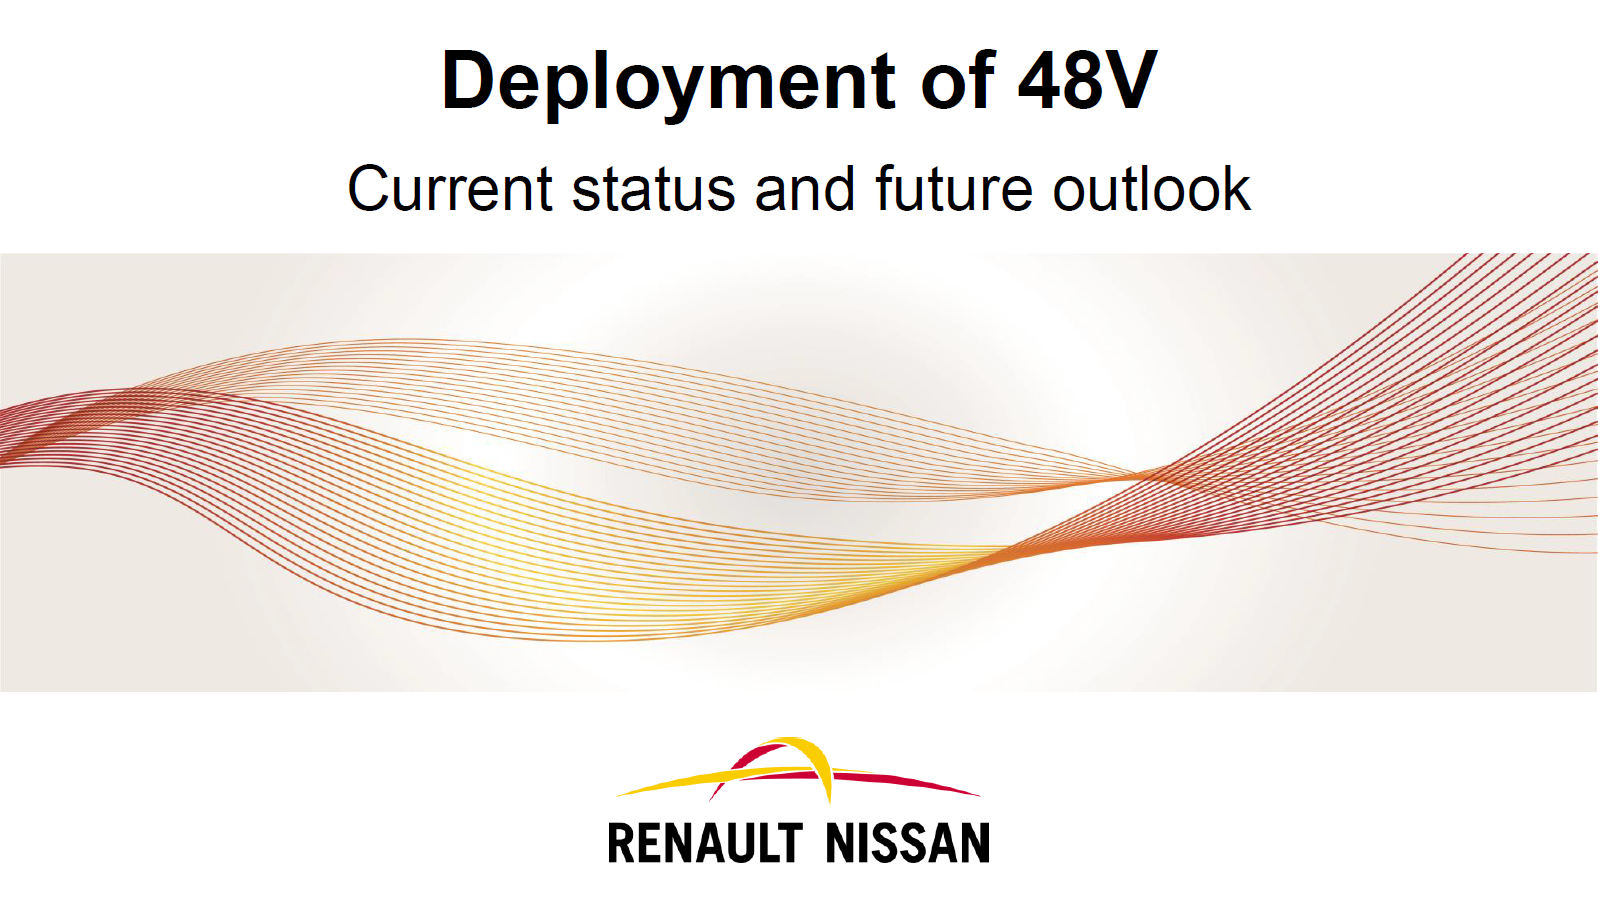 Renault Presentation: Deployment of 48V - Current Status and Future Outlook